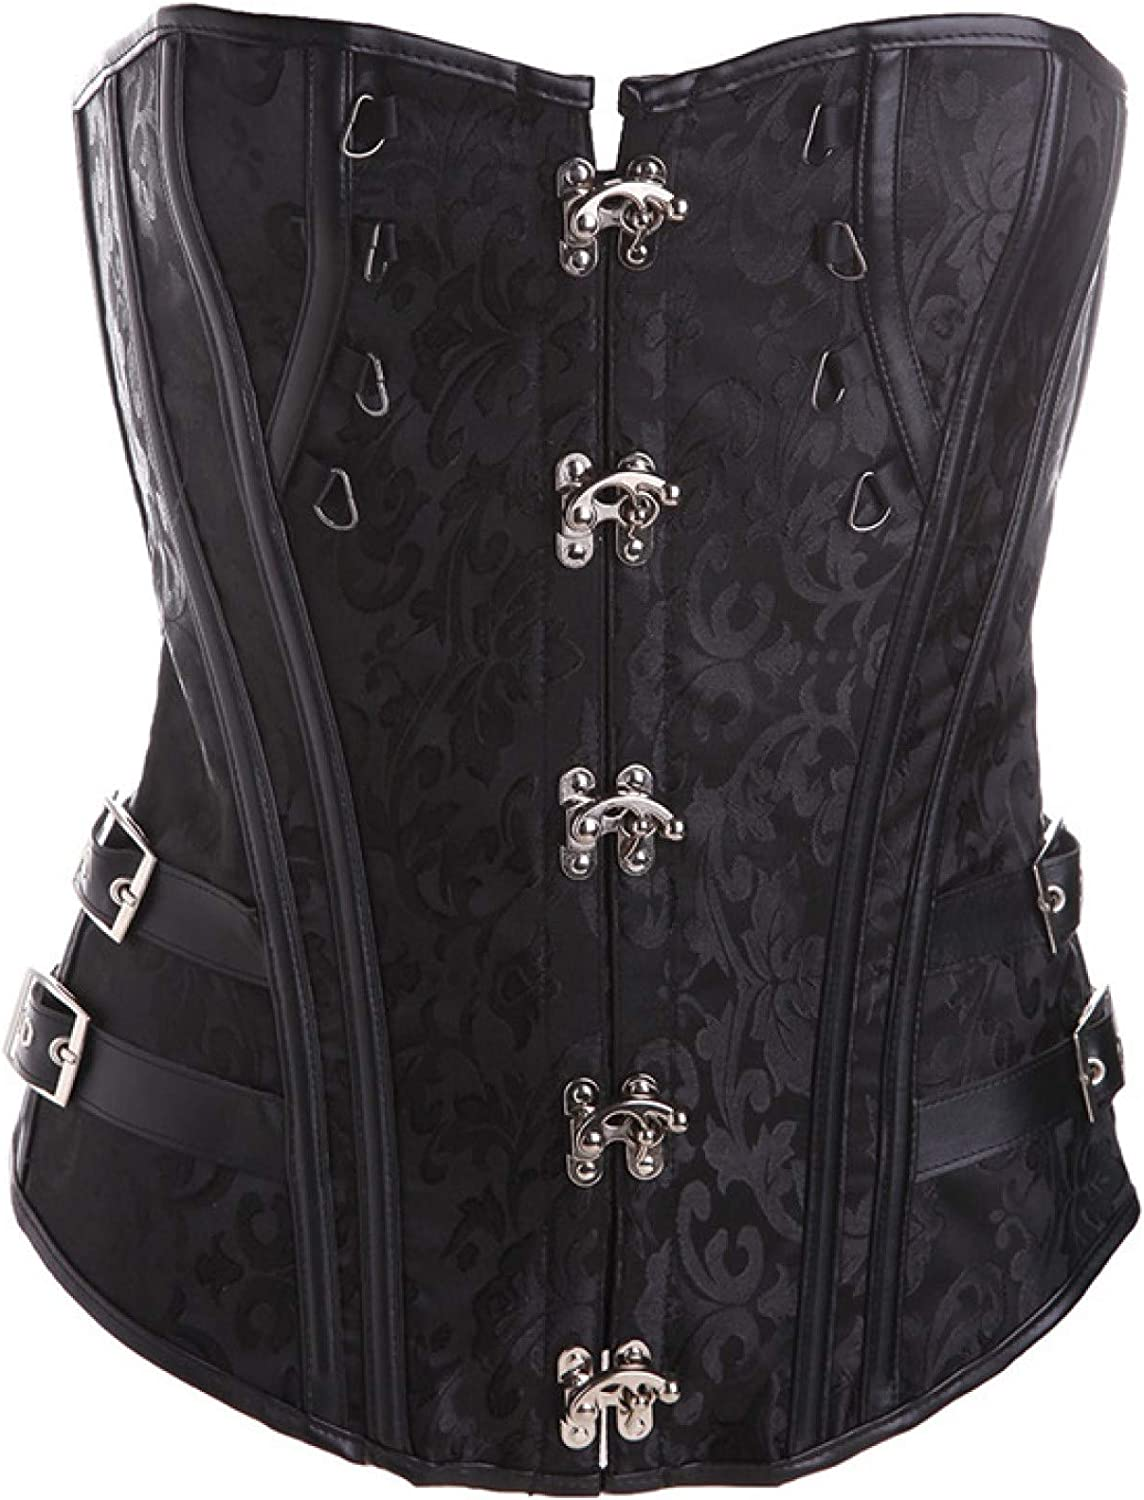 Woman Corsets Overbust Bodyshaper Top Free shipping anywhere in the nation S Costumes Slimming trust Exotic